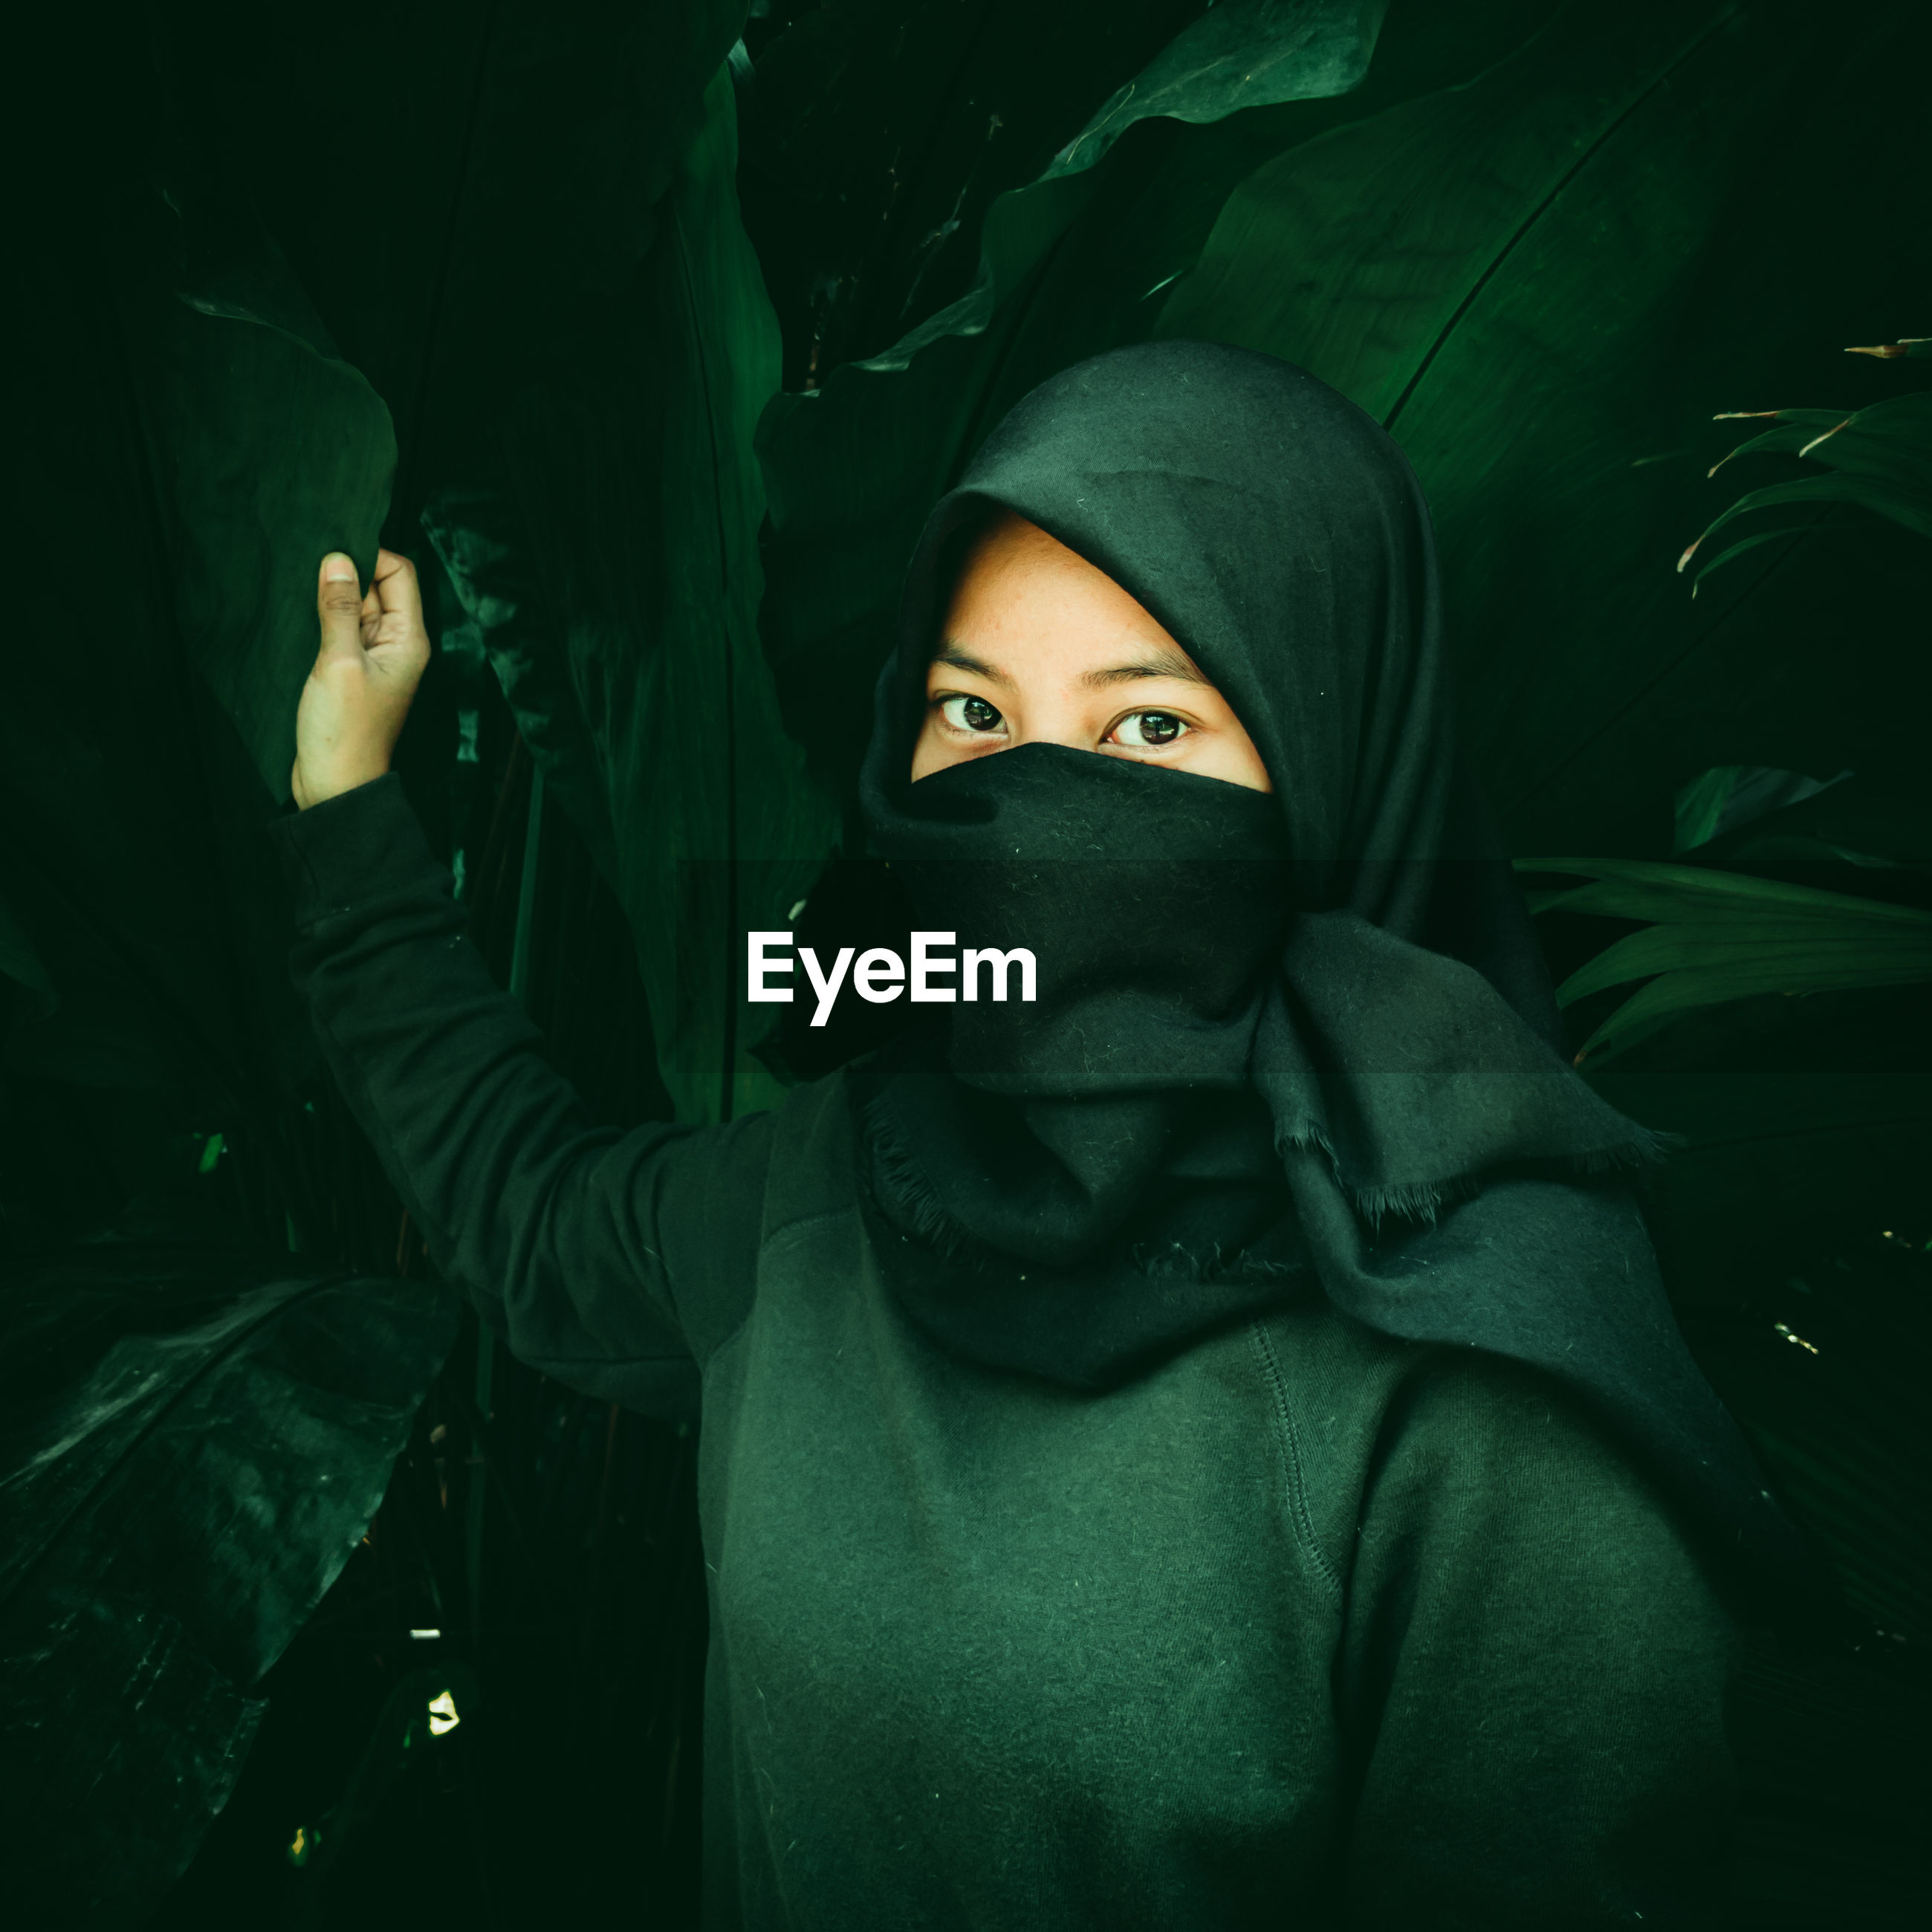 Veiled woman with a dark green effect